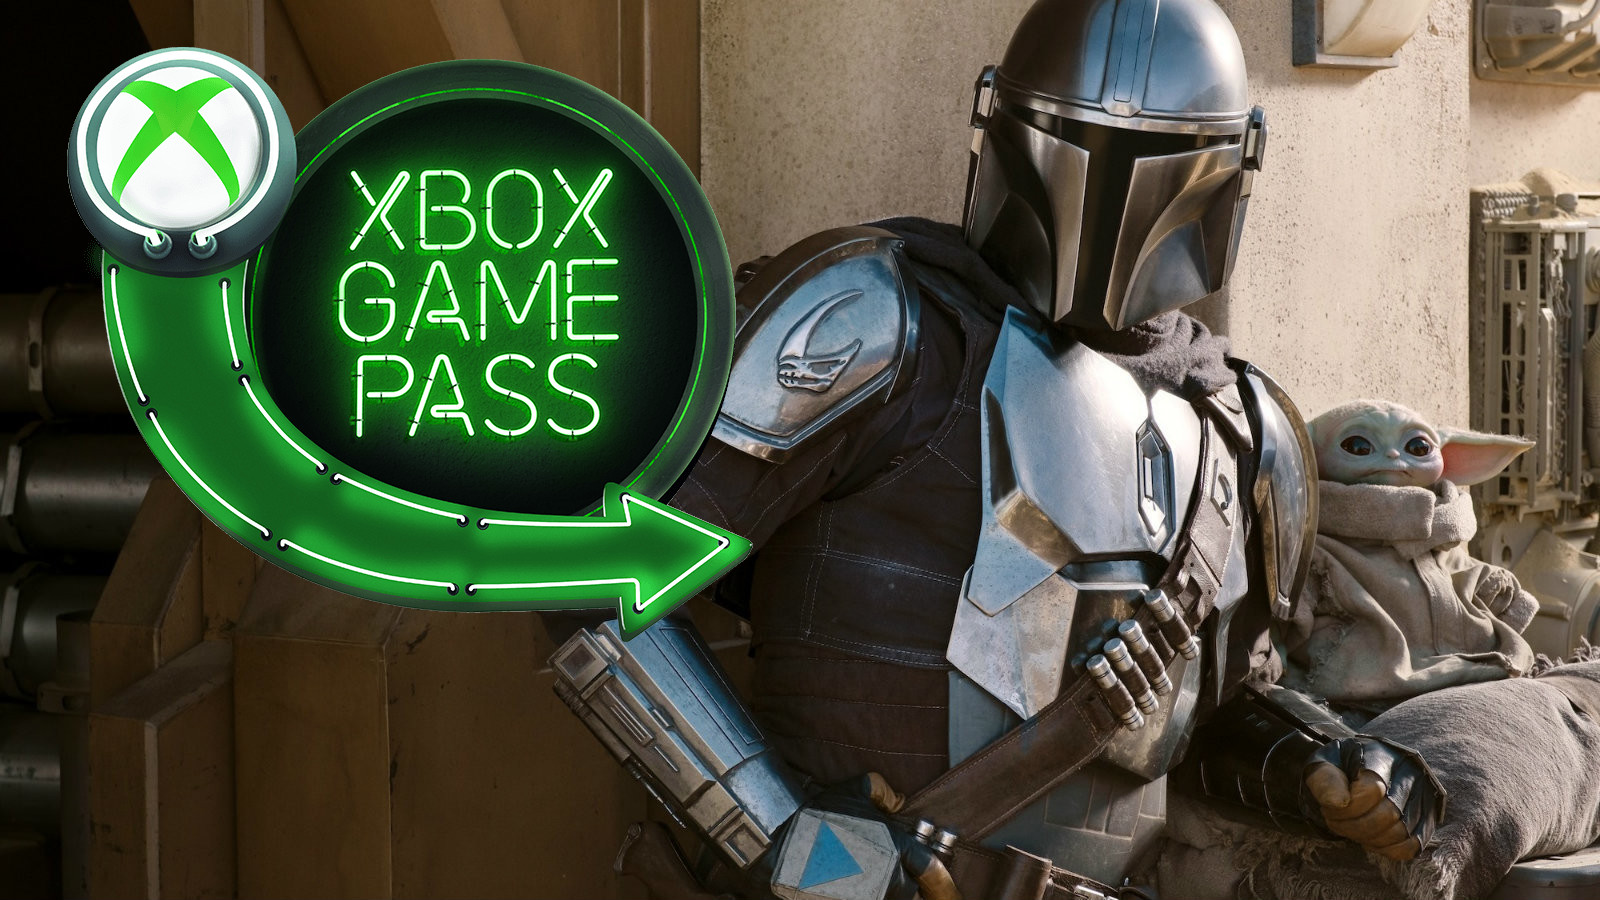 Xbox Game Pass The Mandalorian Disney +